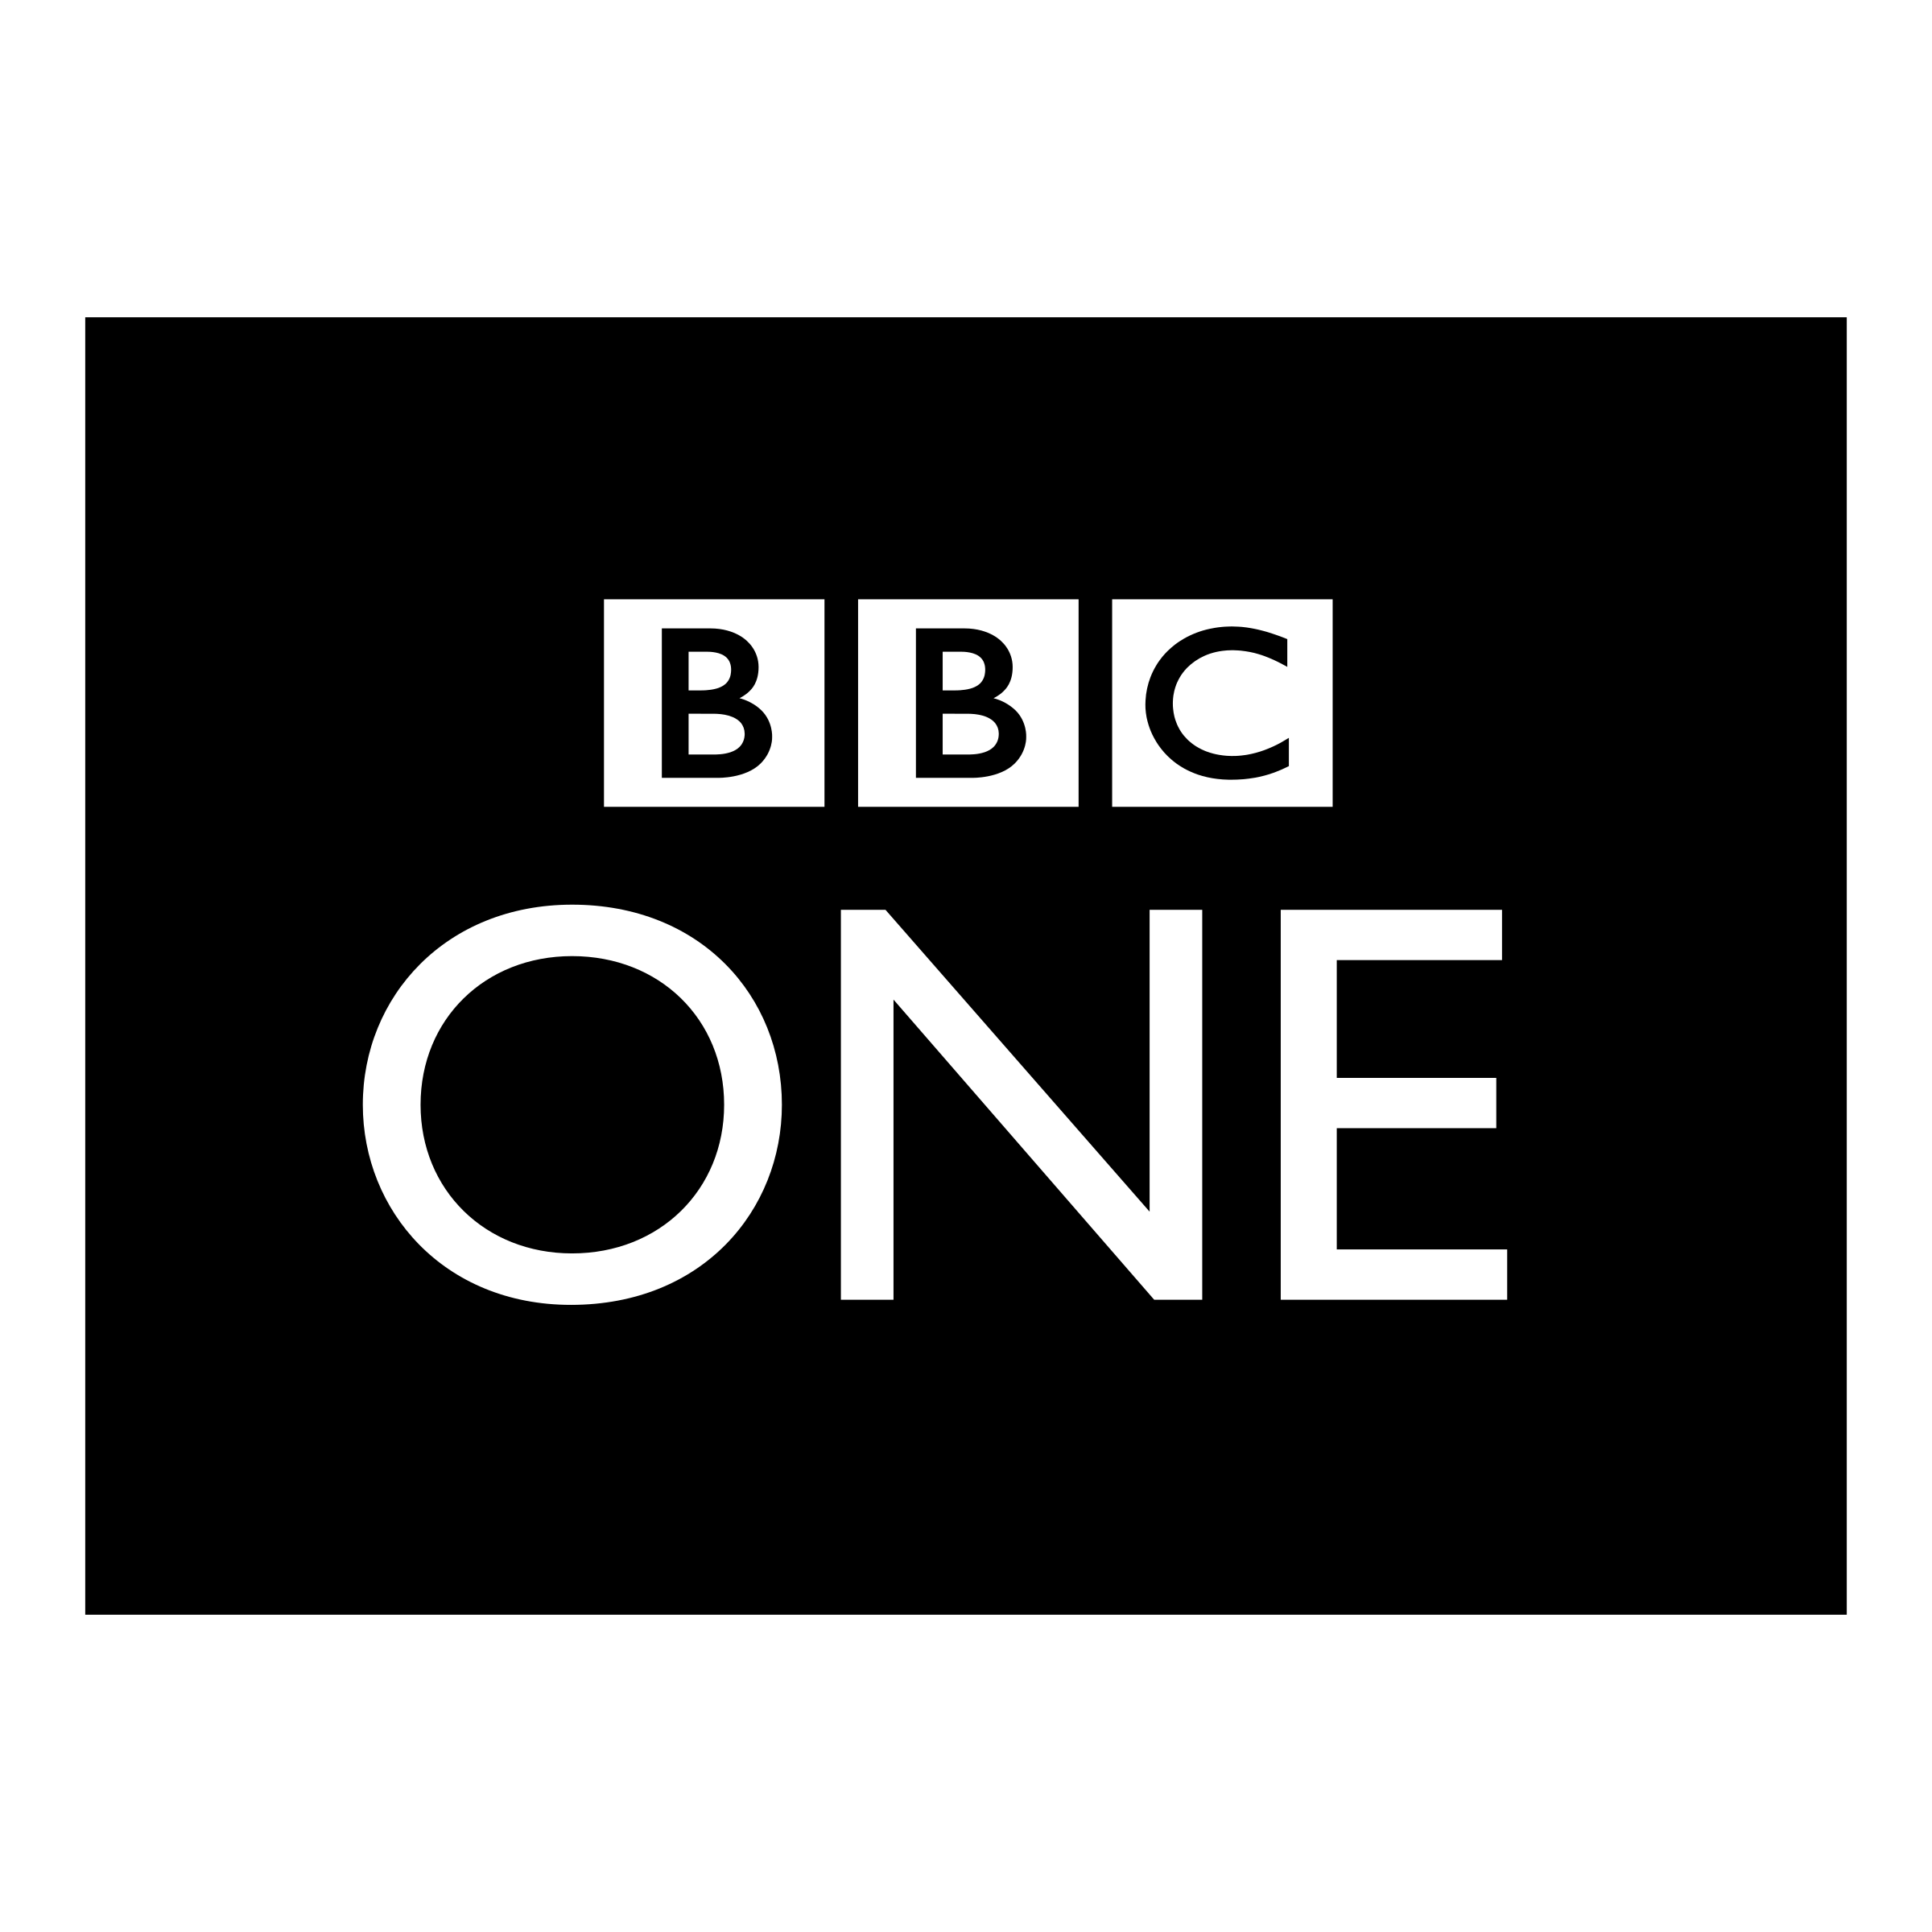 bbc-one-logo-png-transparent.png